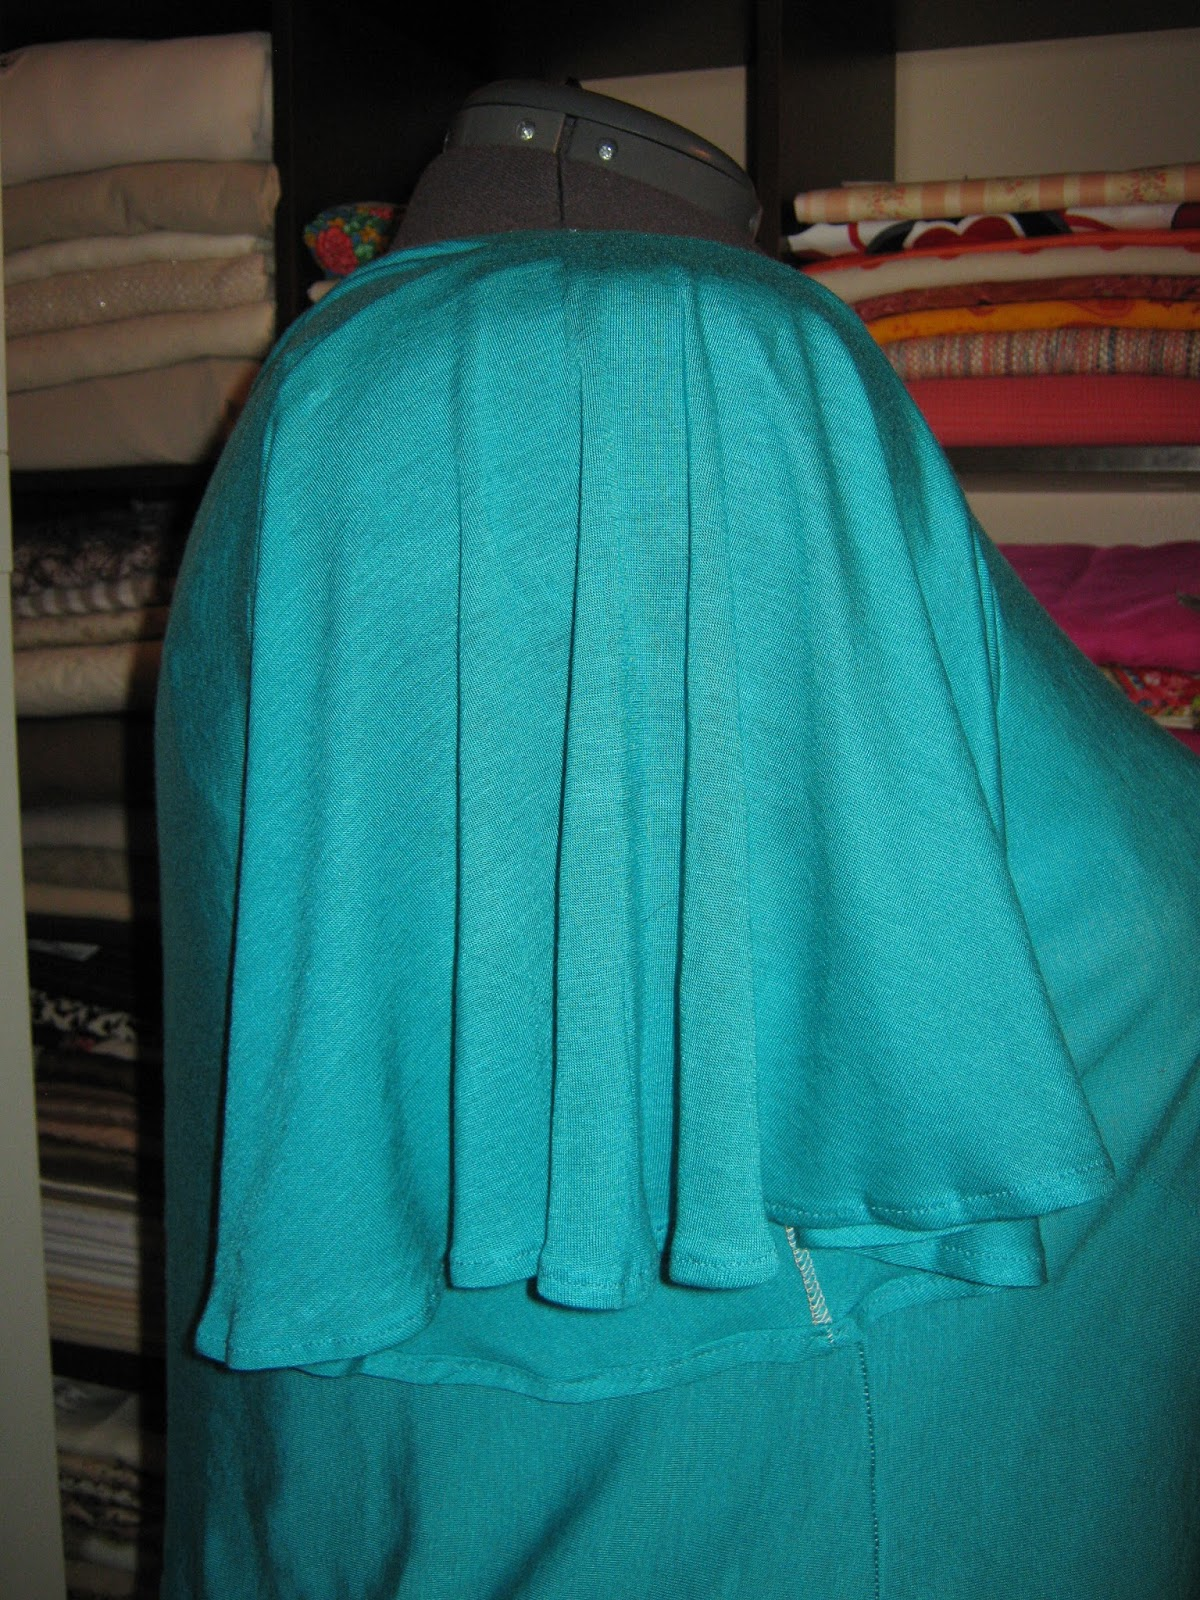 Jersey Knit Sewing Patterns : Sew Plus: Teal Jersey Knit Flutter Sleeve Top